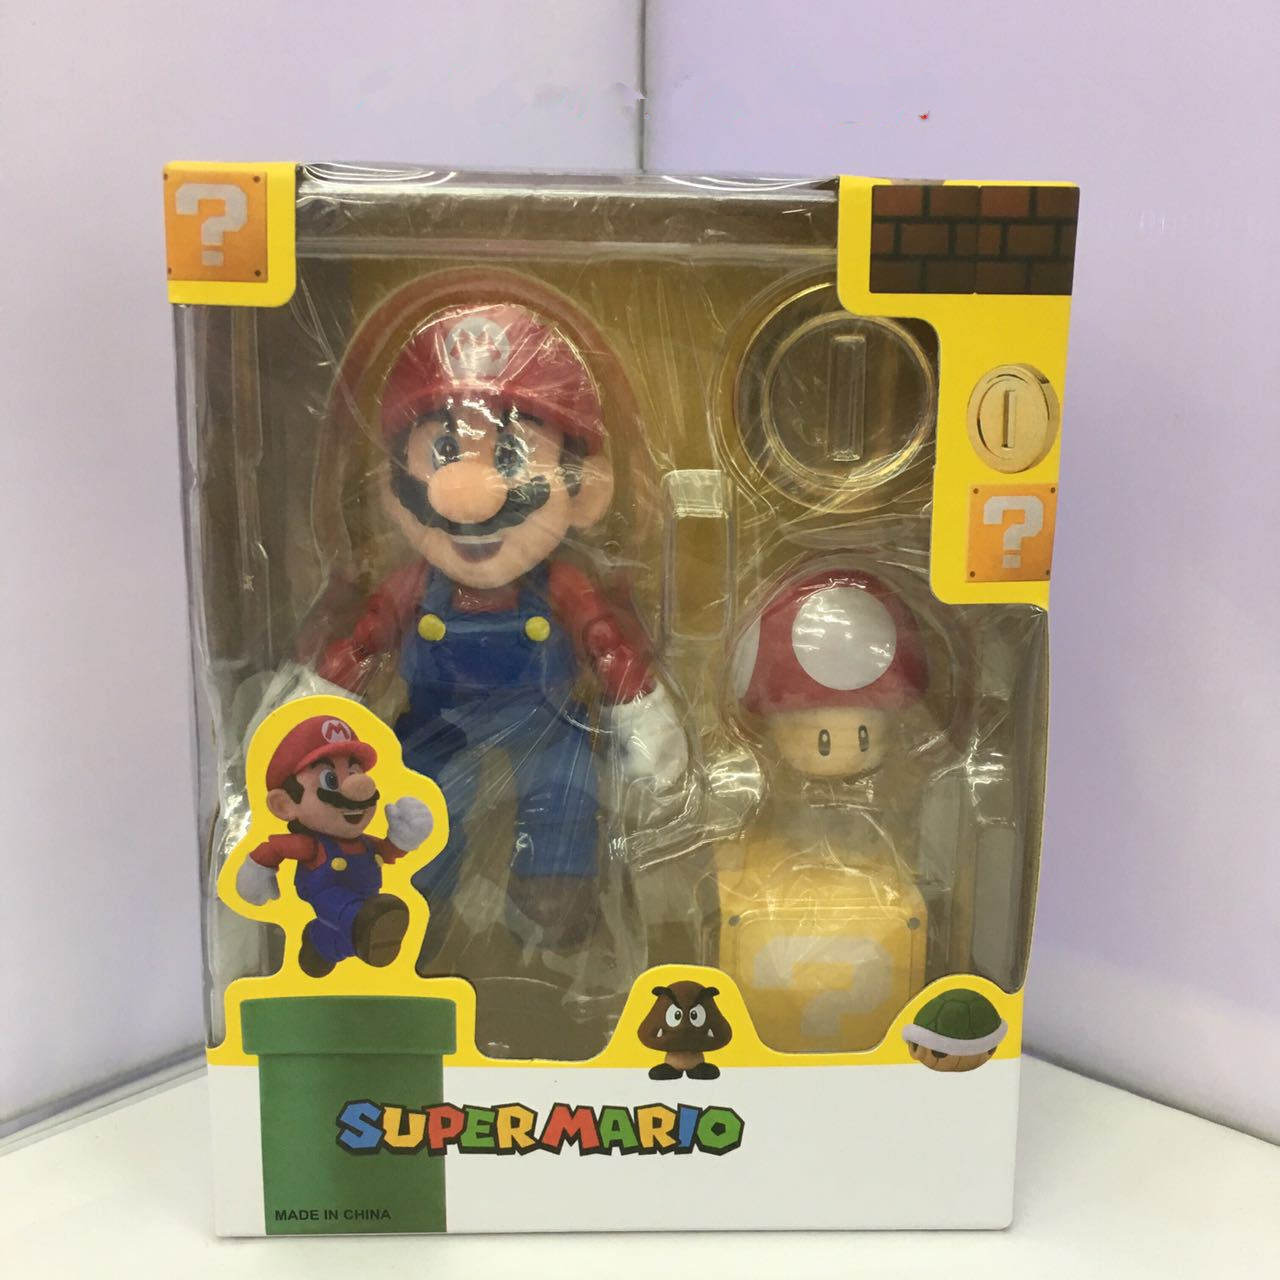 SHFiguarts Super Mario Bros Mario & Toad / Luigi & Koopa PVC Action Figure Collectible Model Toy 11cm KT3857